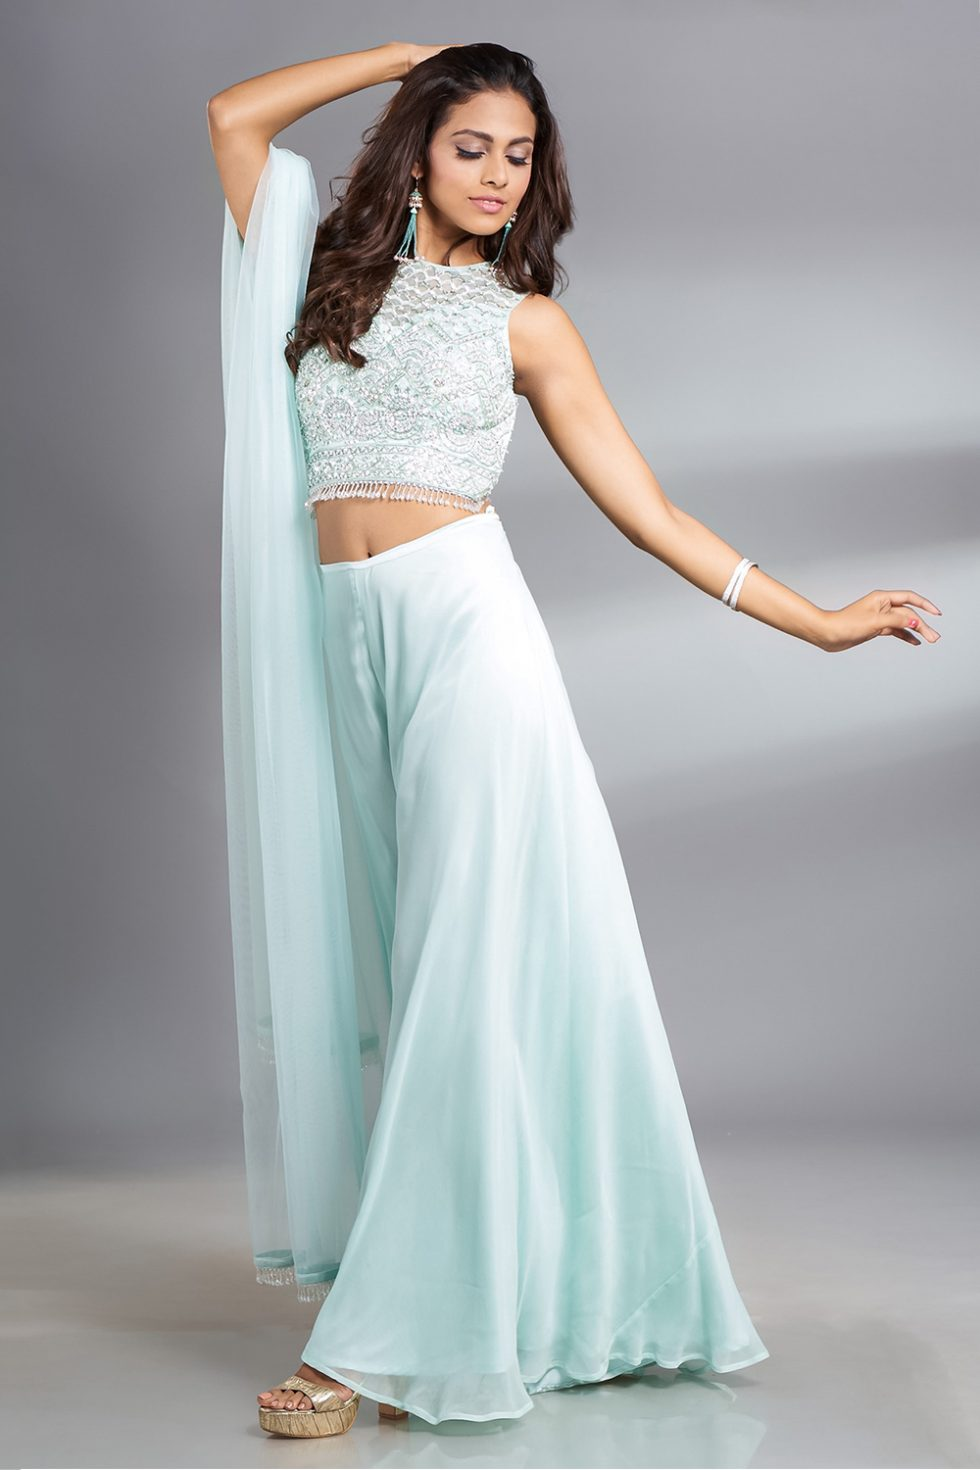 Powder blue palazzo pant set with a hand embroidered blouse and matching dupatta with tassels.